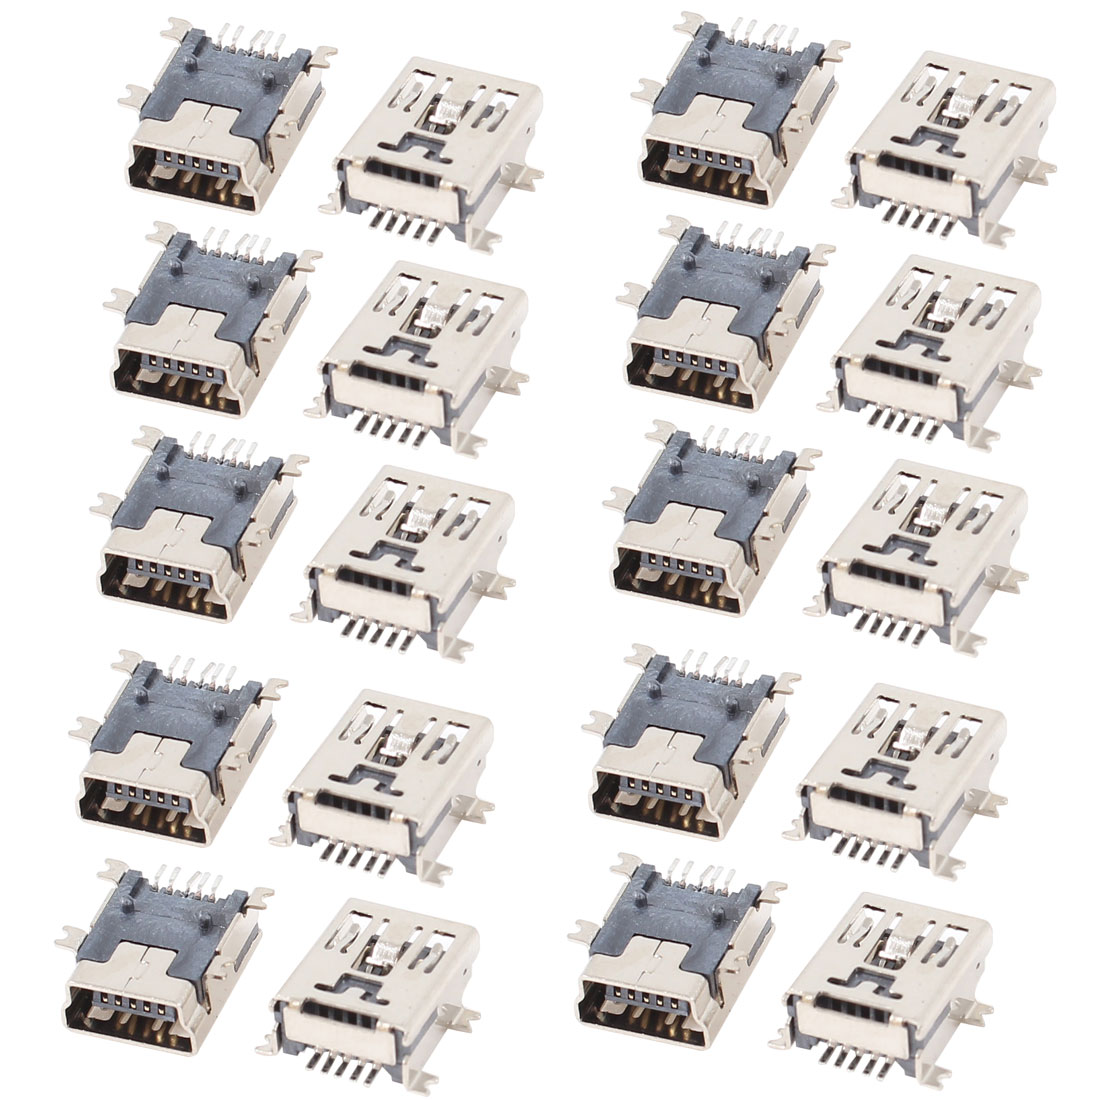 20pcs Mini USB 5P B Type Female Jack Socket SMD Connector